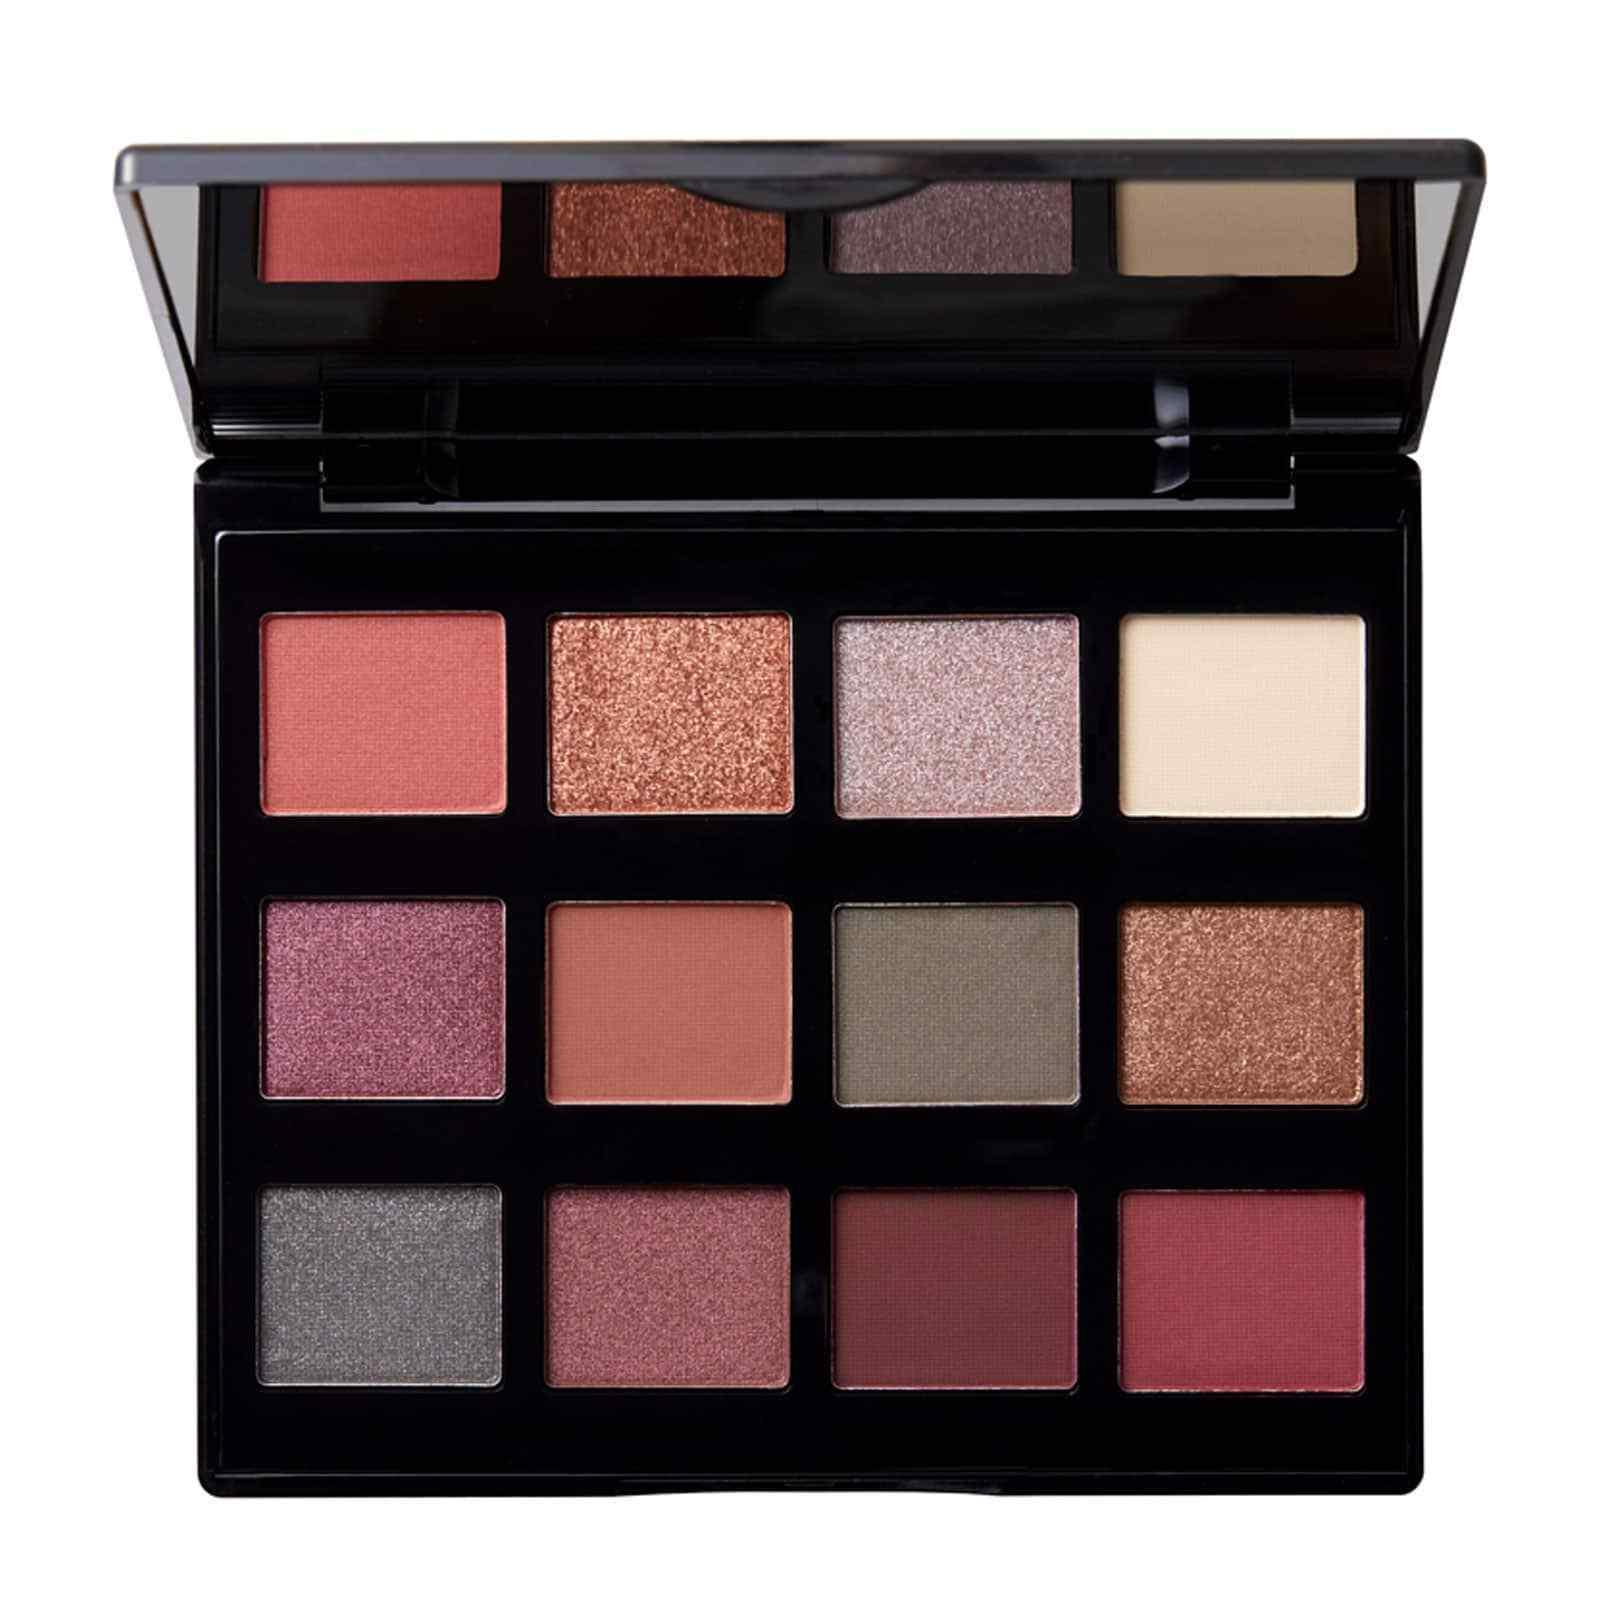 NYX Ignite Palette Limited Edition